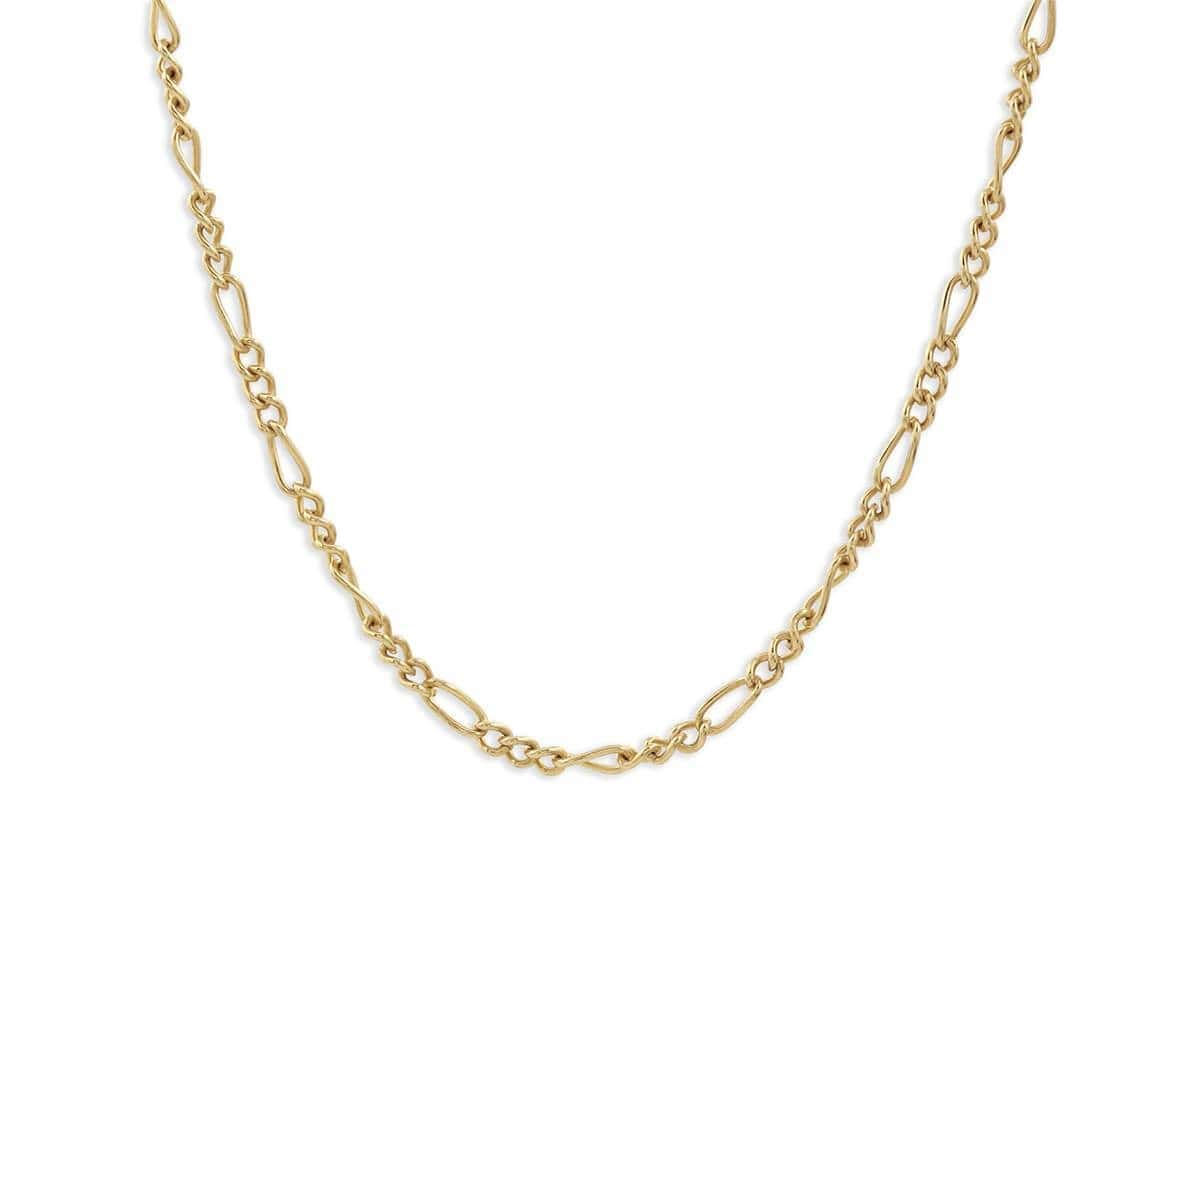 Yellow Gold Delicate Chain Choker Necklace